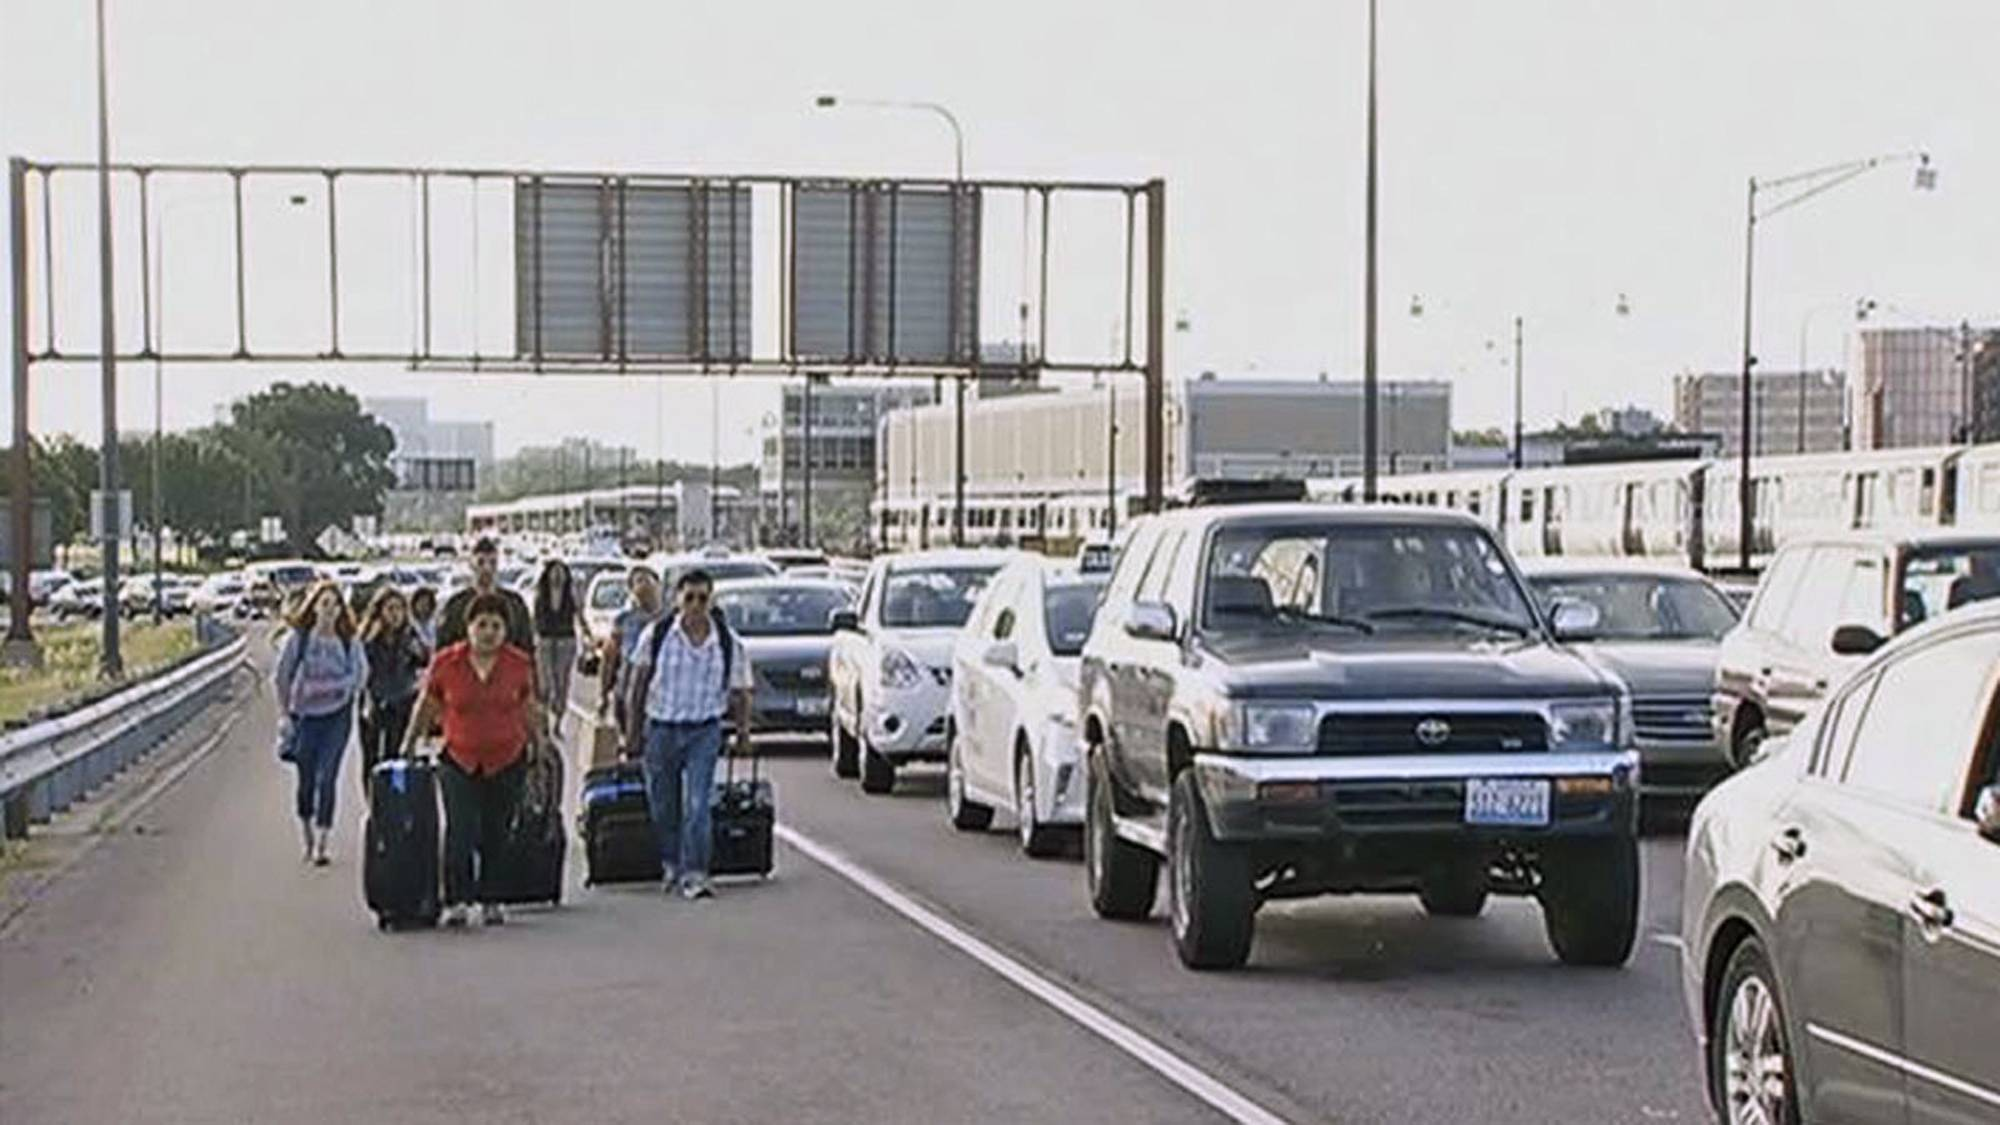 Air travelers wheeling their luggage toward Chicago's O'Hare International Airport Tuesday after sudden rains flooded the Kennedy Expressway Desperate travelers were forced to get out of taxis and haul their luggage the rest of the way to the airport.